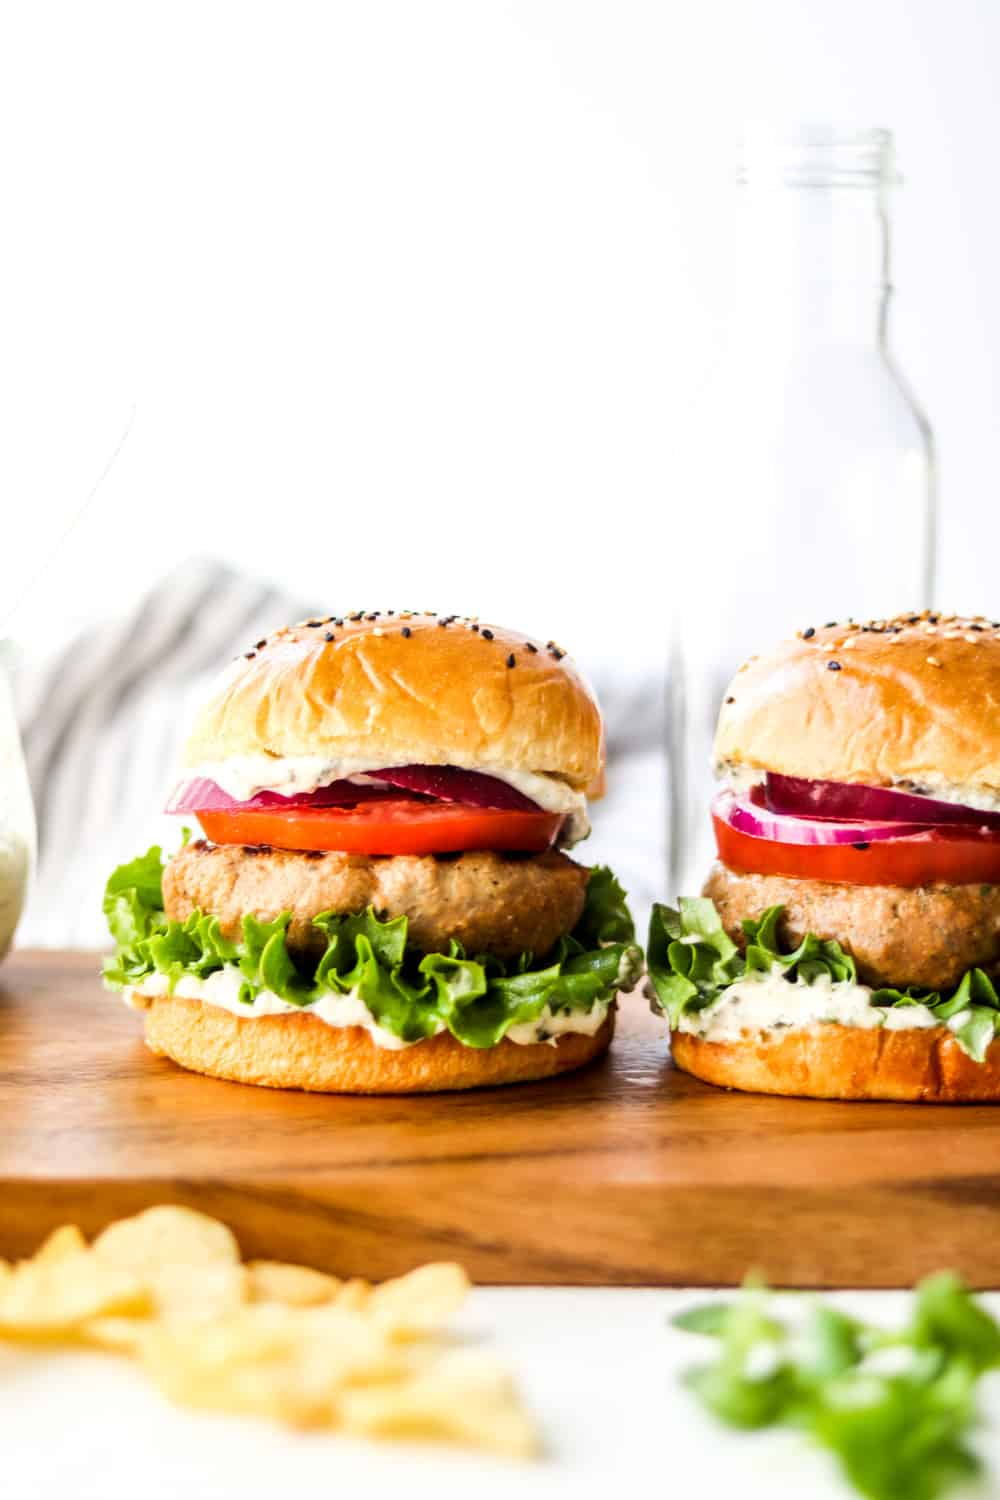 two turkey burgers on buns with sesame seeds on top and lettuce an tomato in them on a wooden board.